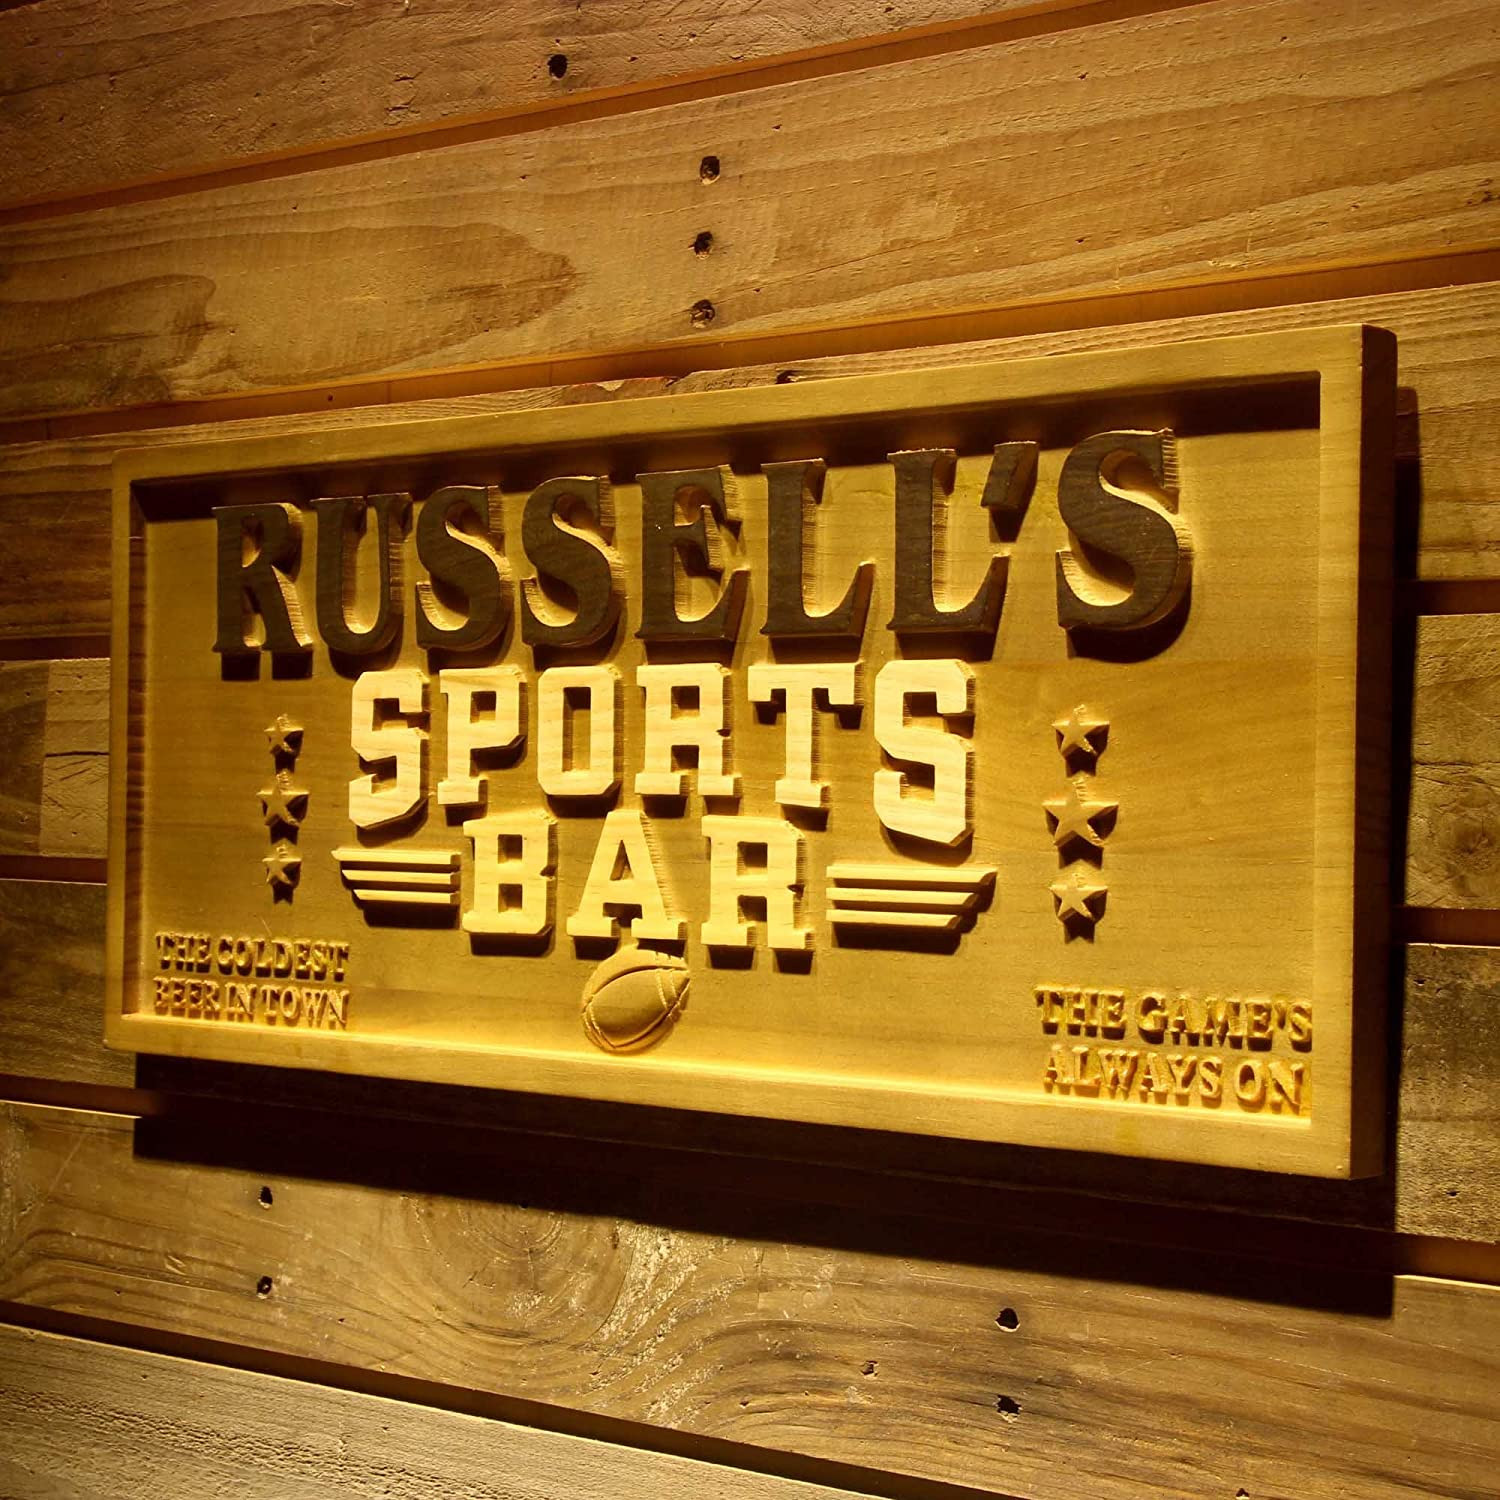 Wpa0077 Name Personalized Sports Bar Football Baseball Basketball Man Cave 3D Engraved Wooden Sign - Standard 23  x 9.25